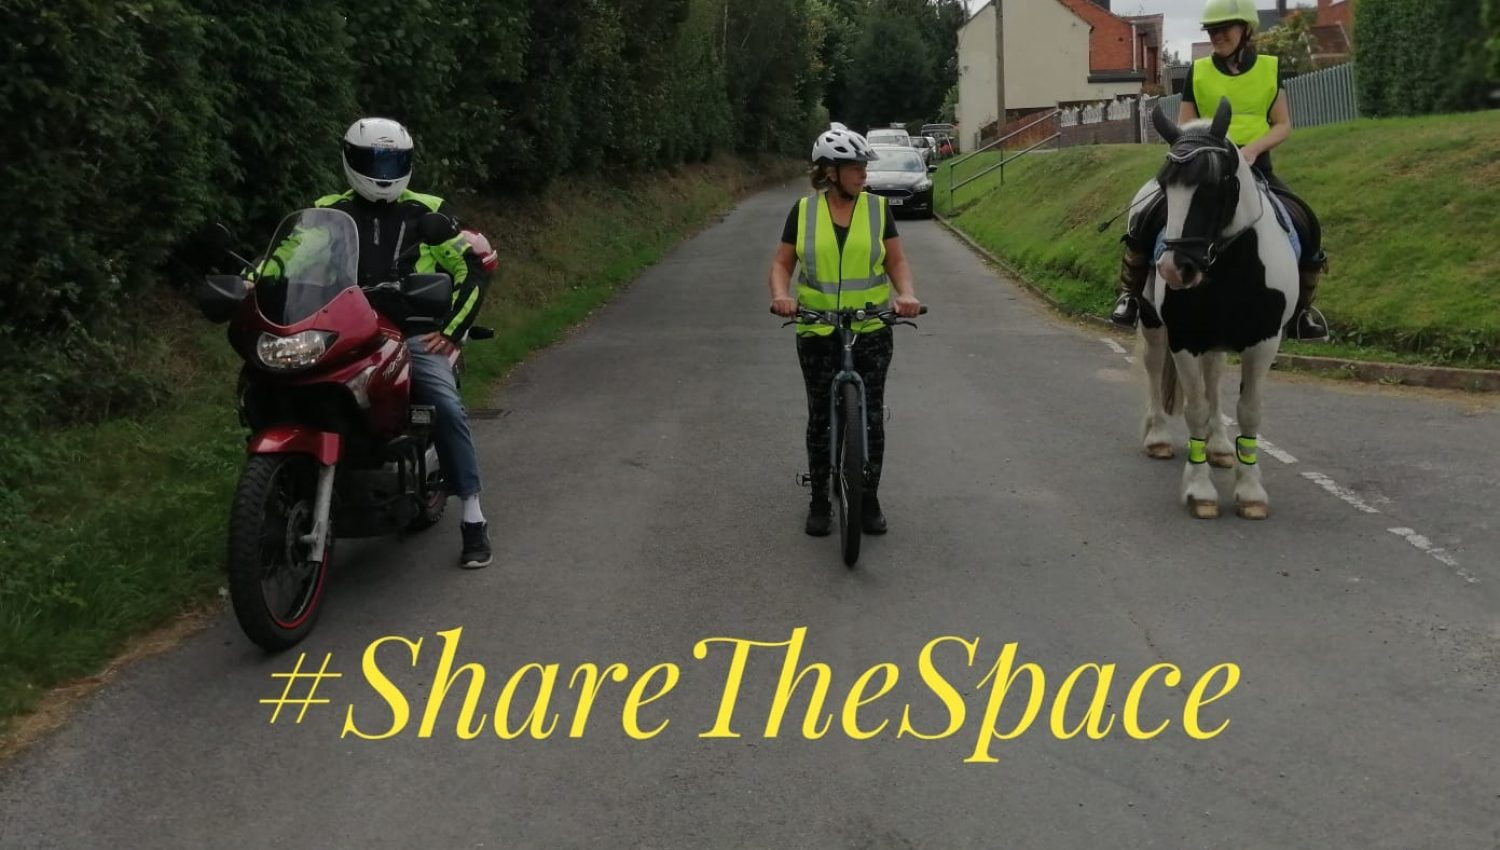 share the space photo motorcyclist cyclist and horse rider